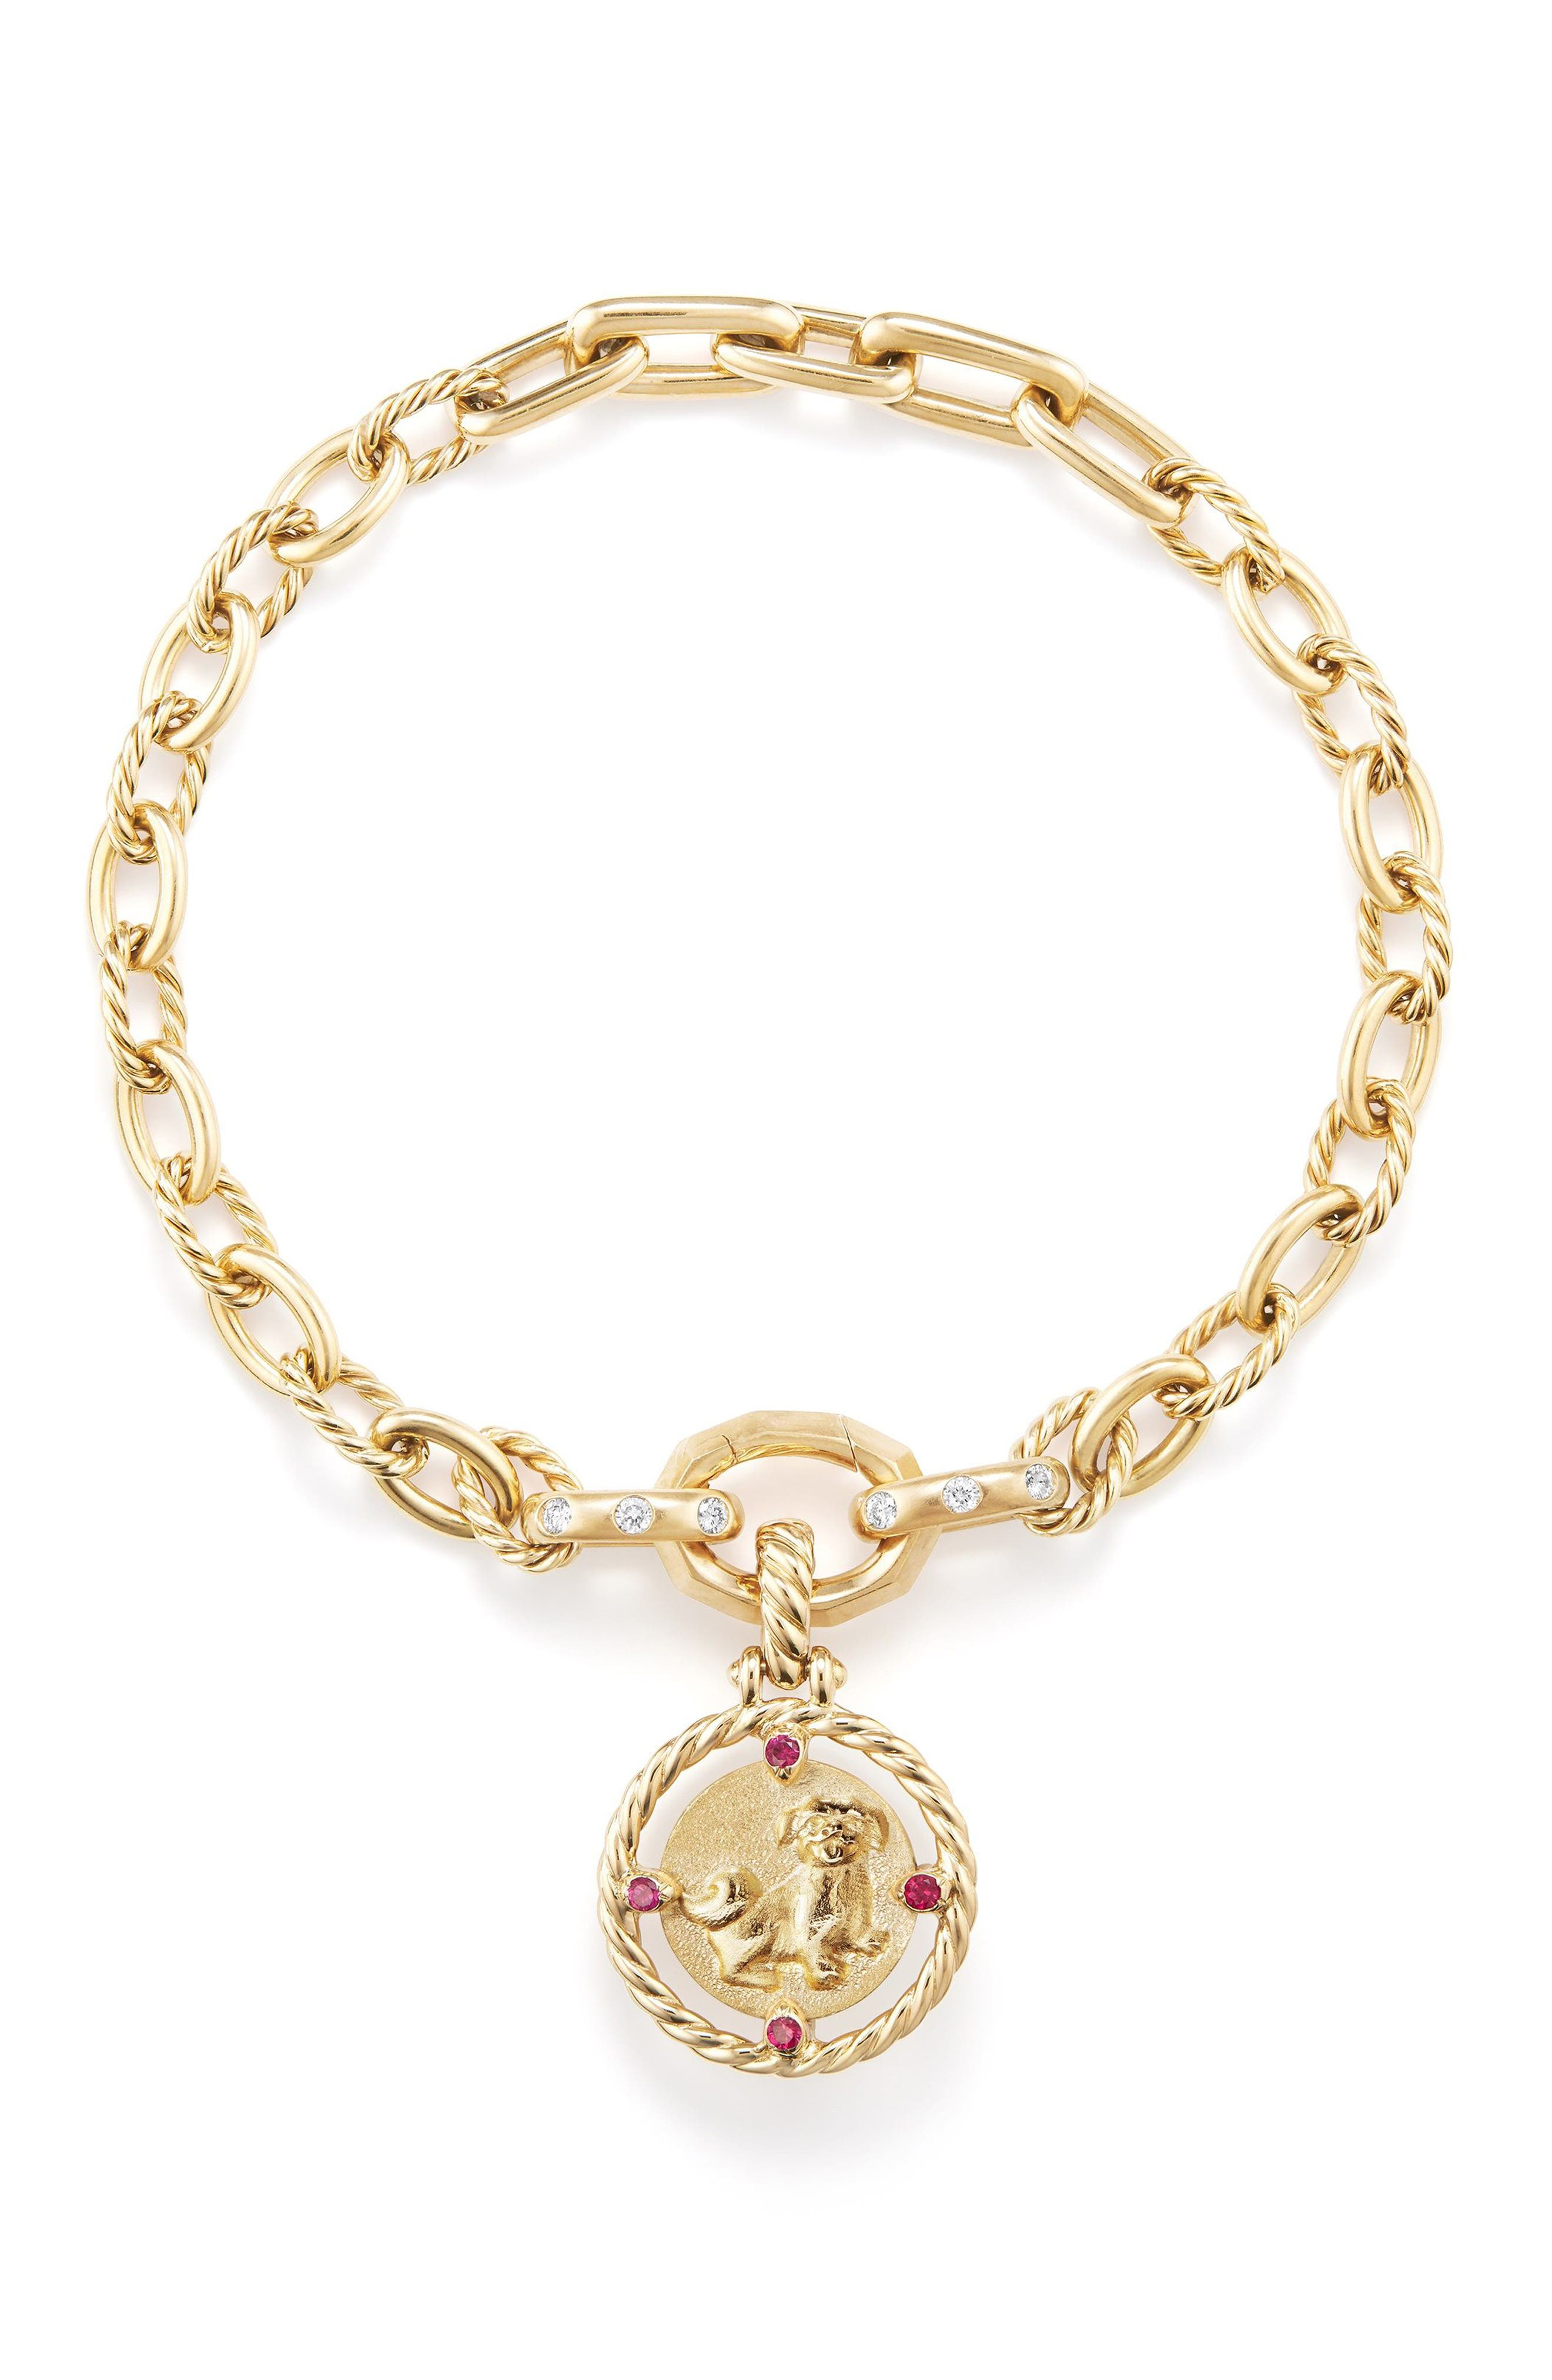 Lunar New Year Charm in 18K Gold with Rubies,                             Alternate thumbnail 3, color,                             710